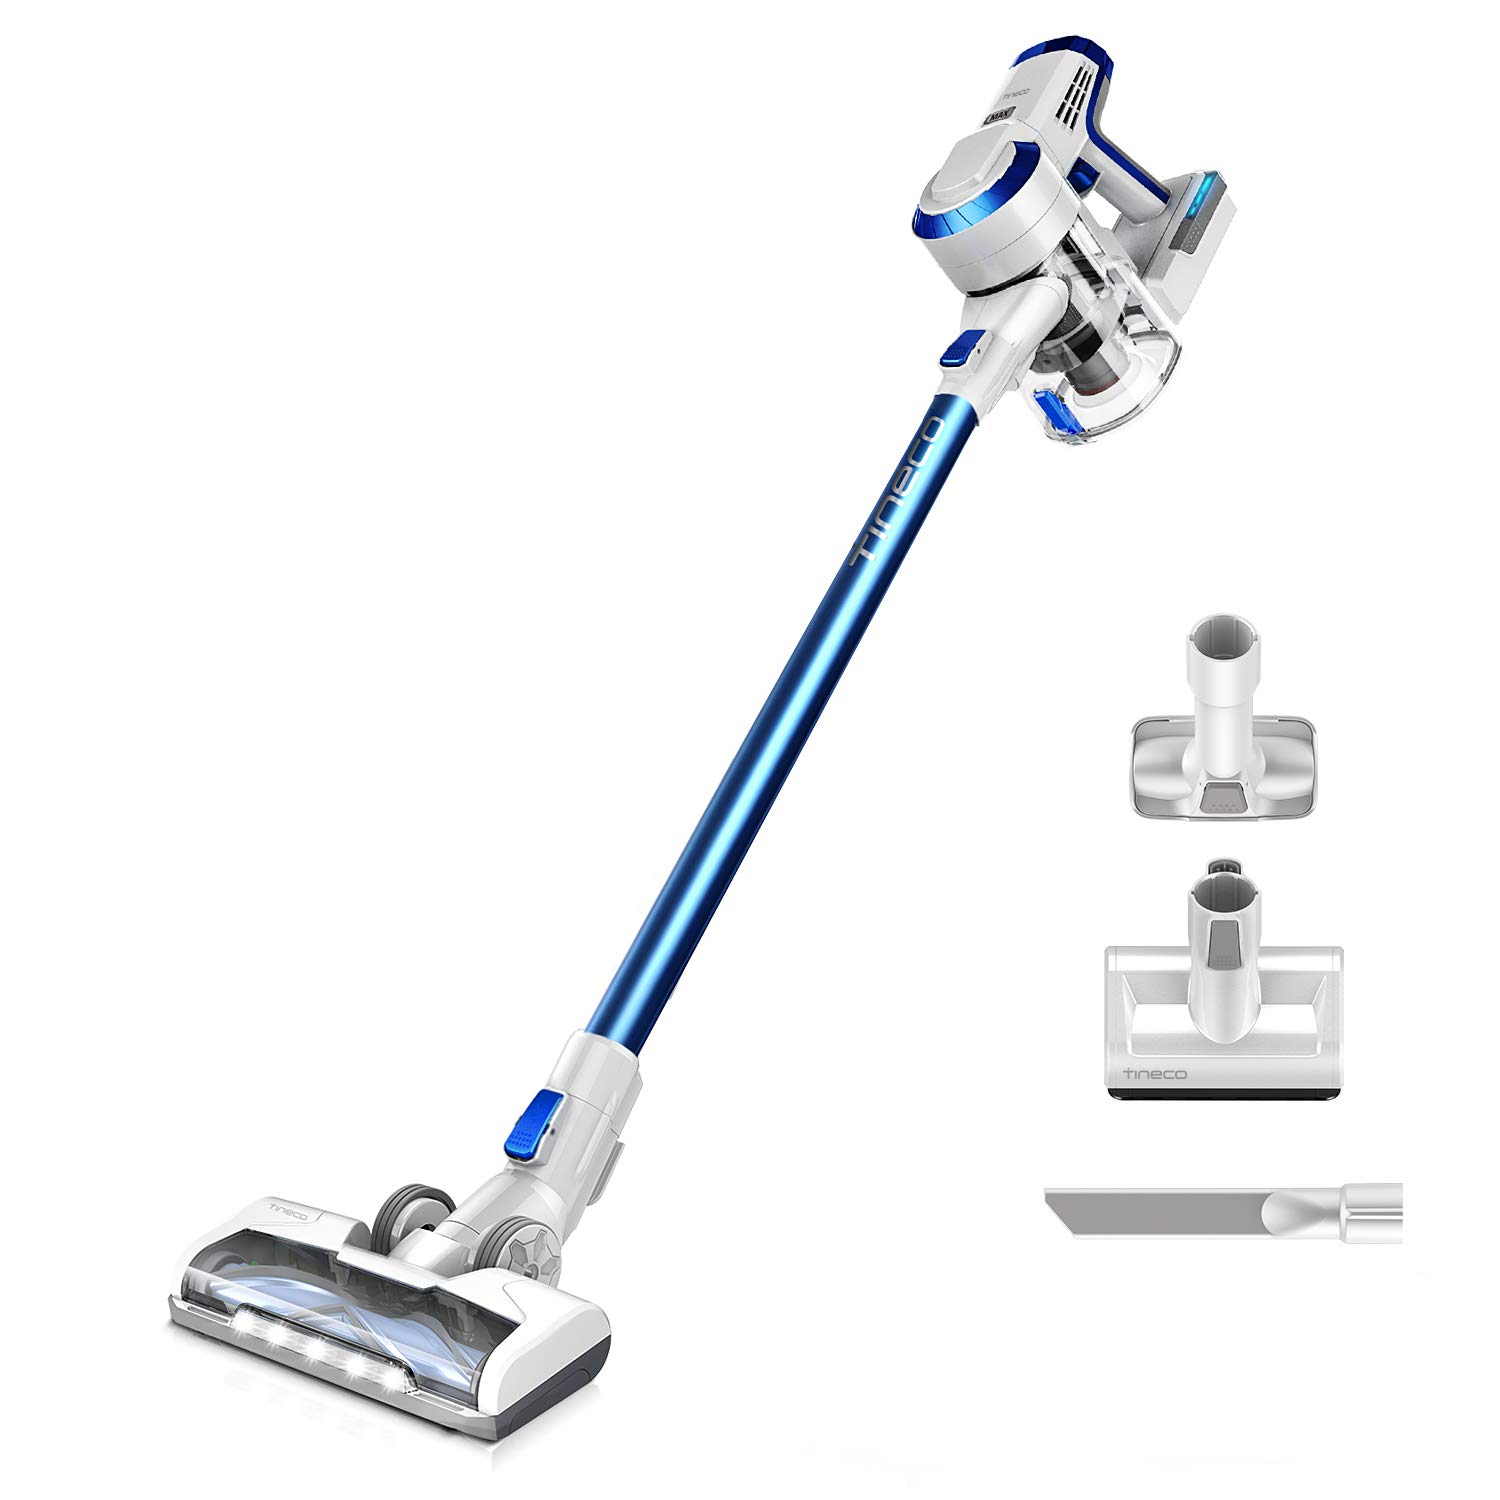 Tineco A10 Hero Cordless Vacuum Cleaner Handheld Stick Vacuum Lightweight 350W Digital Motor Lithium Battery and LED Brush